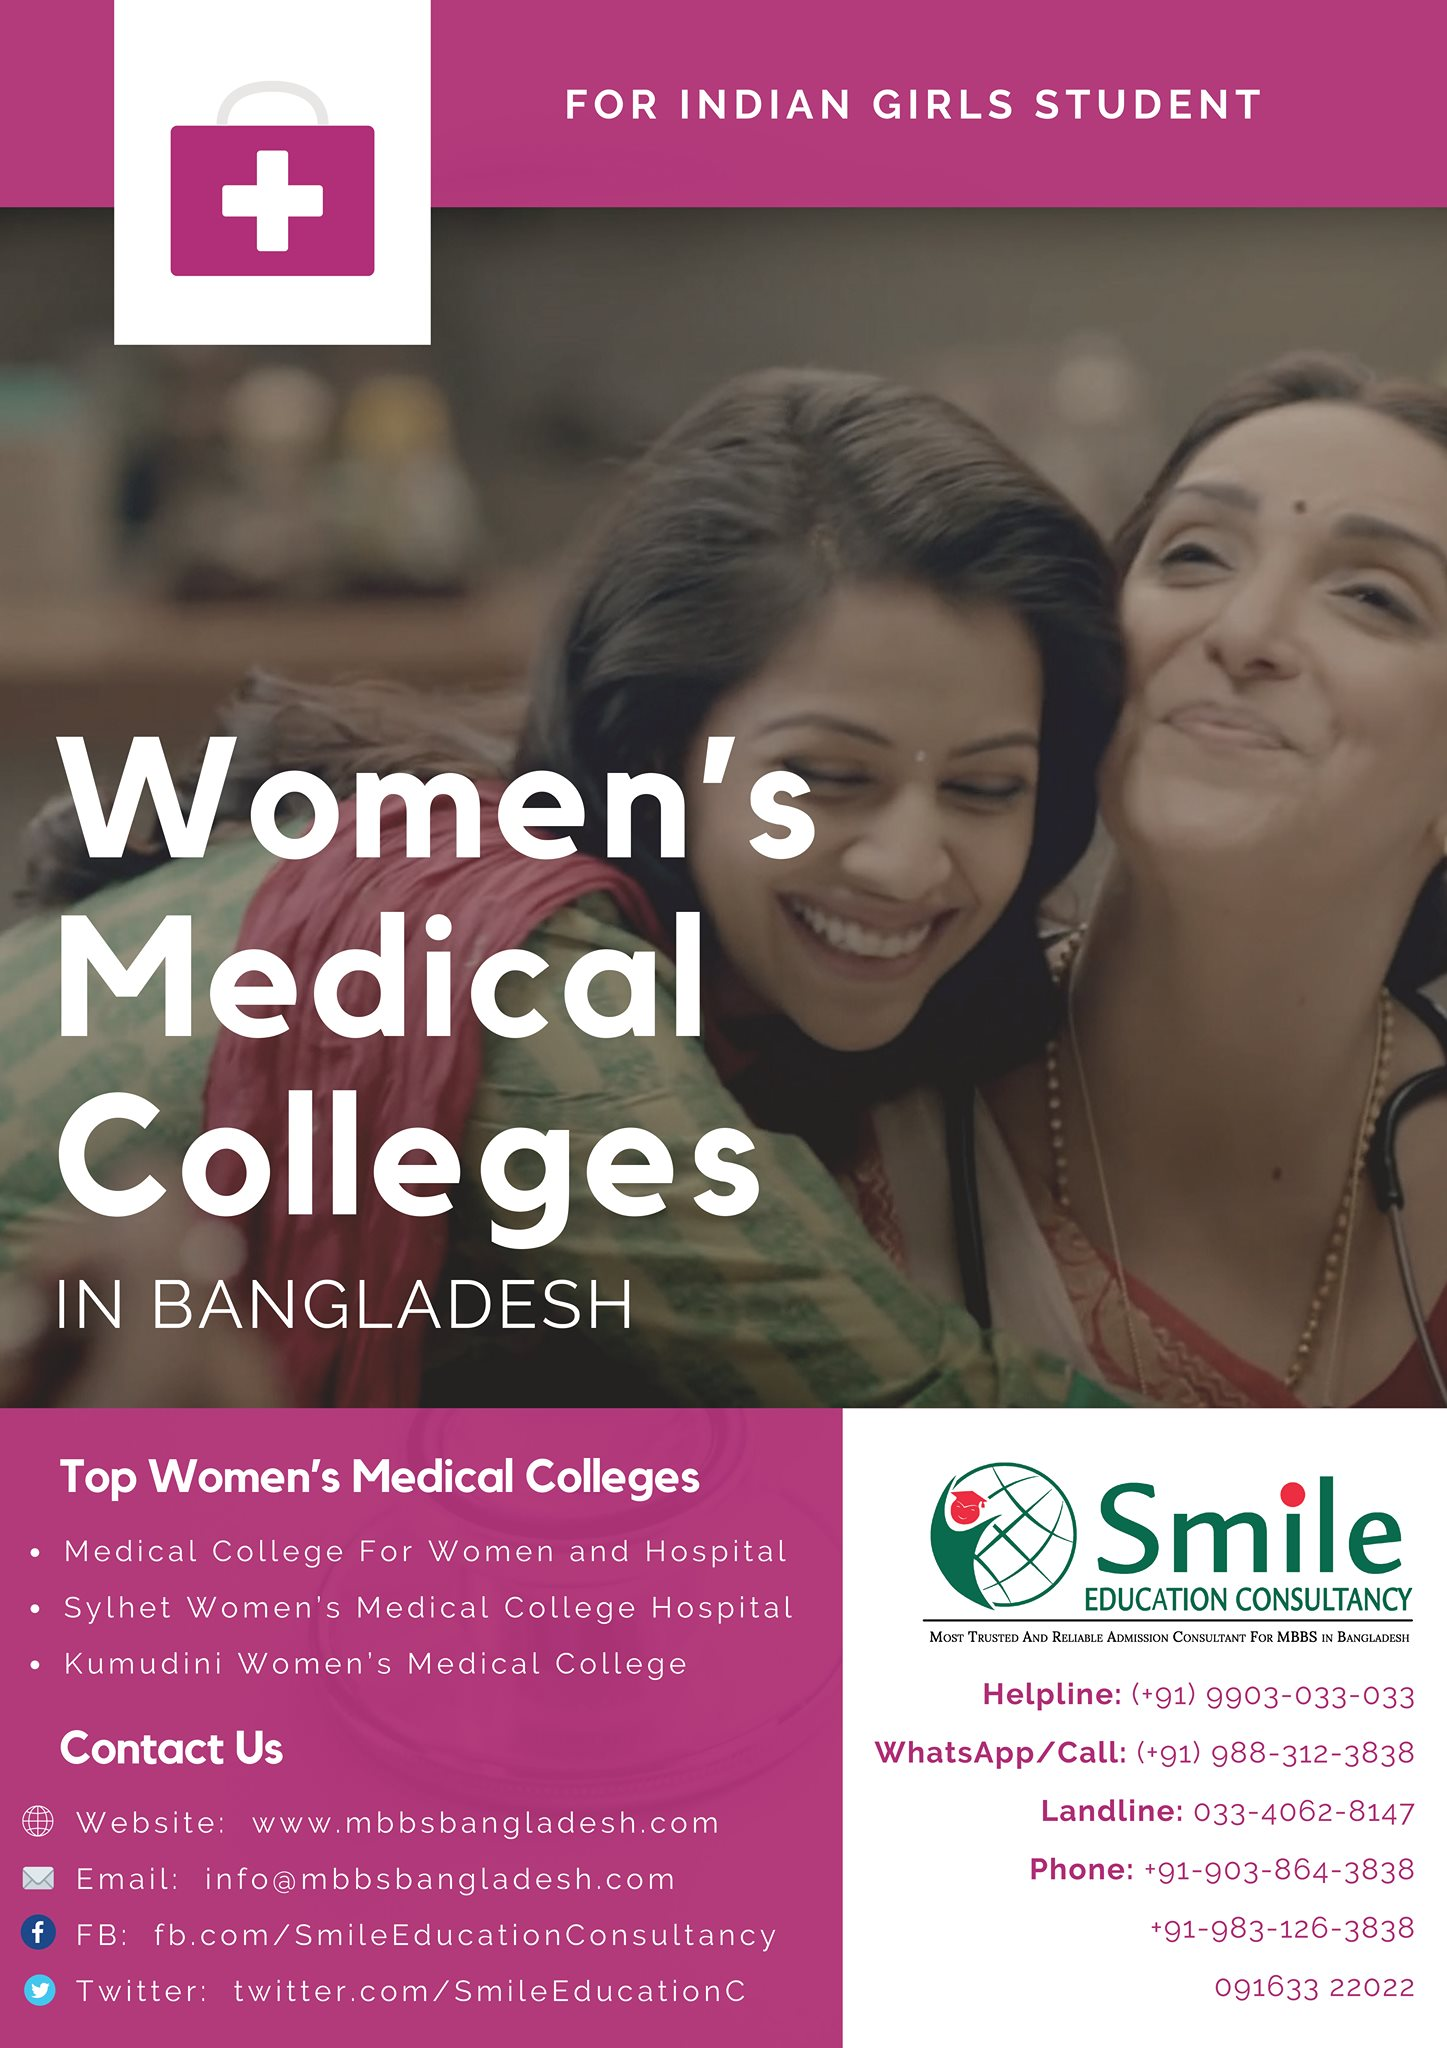 Smile Education Consultancy Becomes the Leading Option for Indians Who Wish to Apply for Medical Colleges in Bangladesh